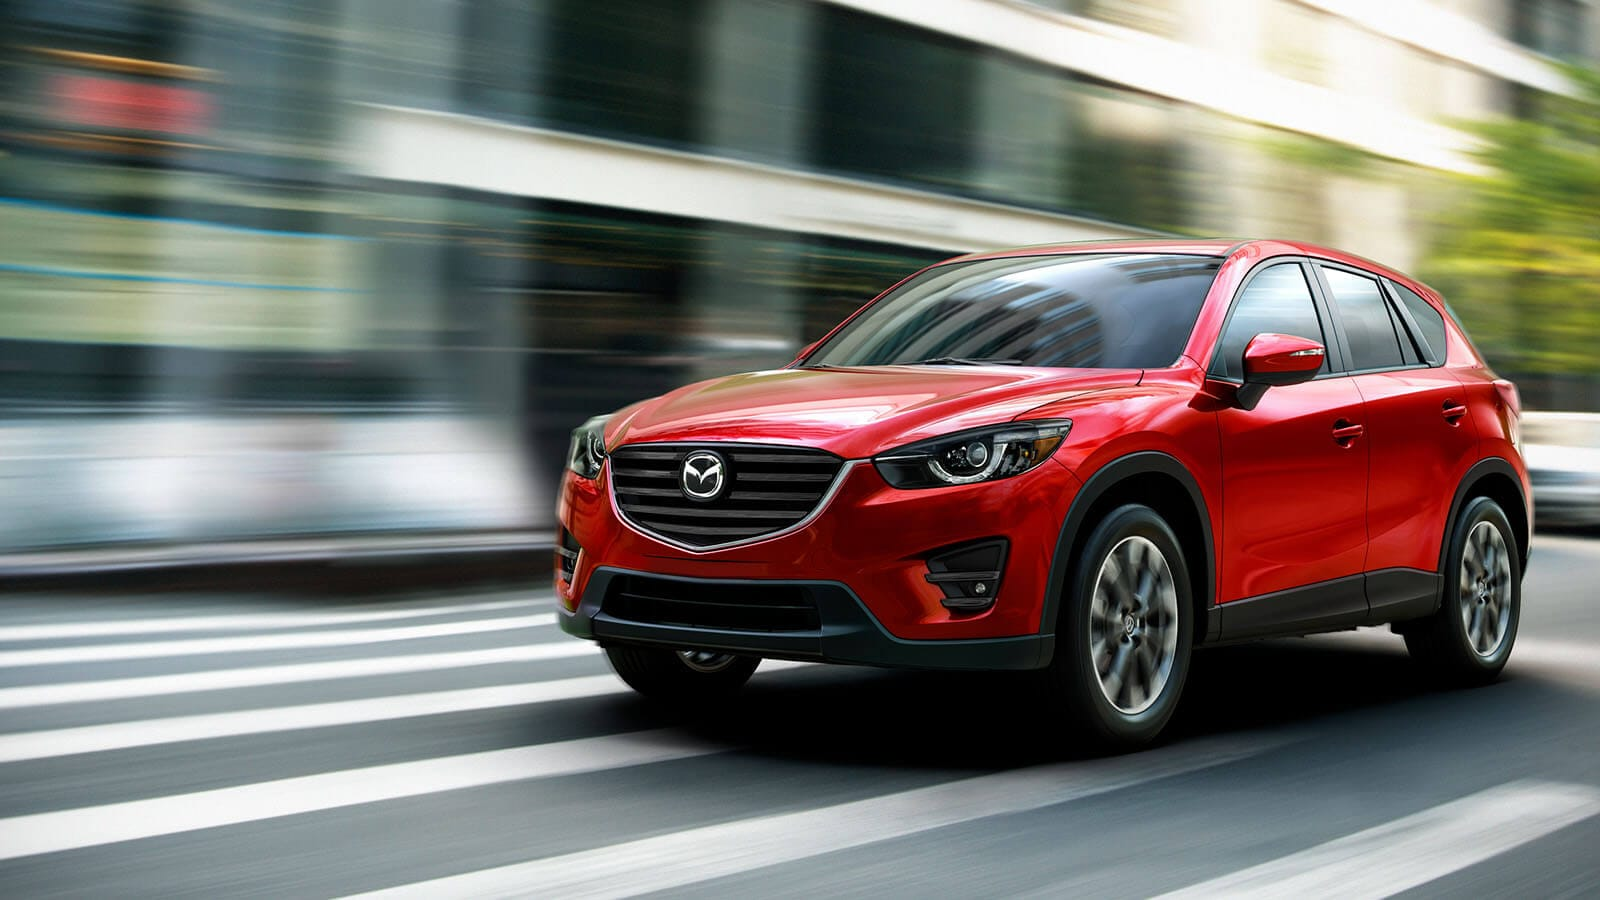 2016 mazda cx 5 for sale at west coast mazda pitt meadows bc. Black Bedroom Furniture Sets. Home Design Ideas